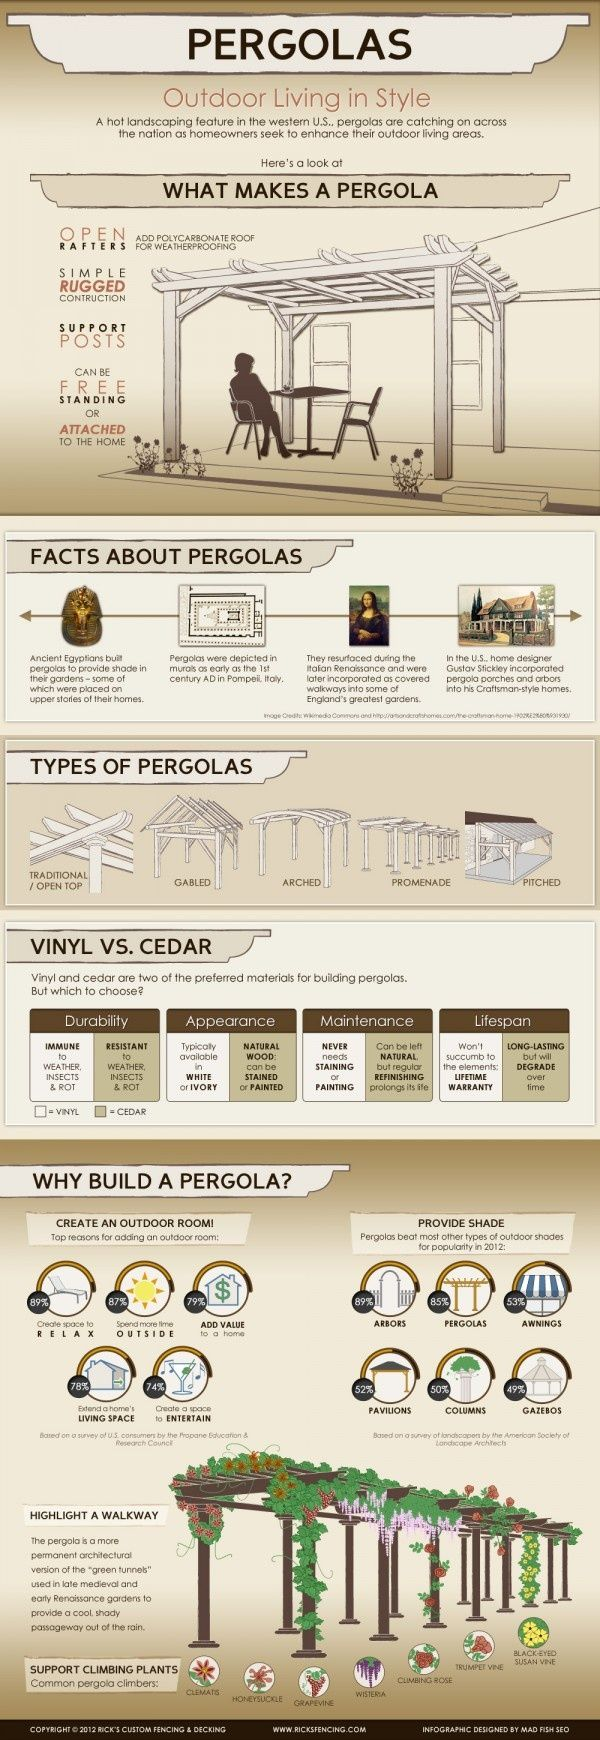 Pergolas: Outdoor Living in Style | Infographics Showcase Remember to Follow